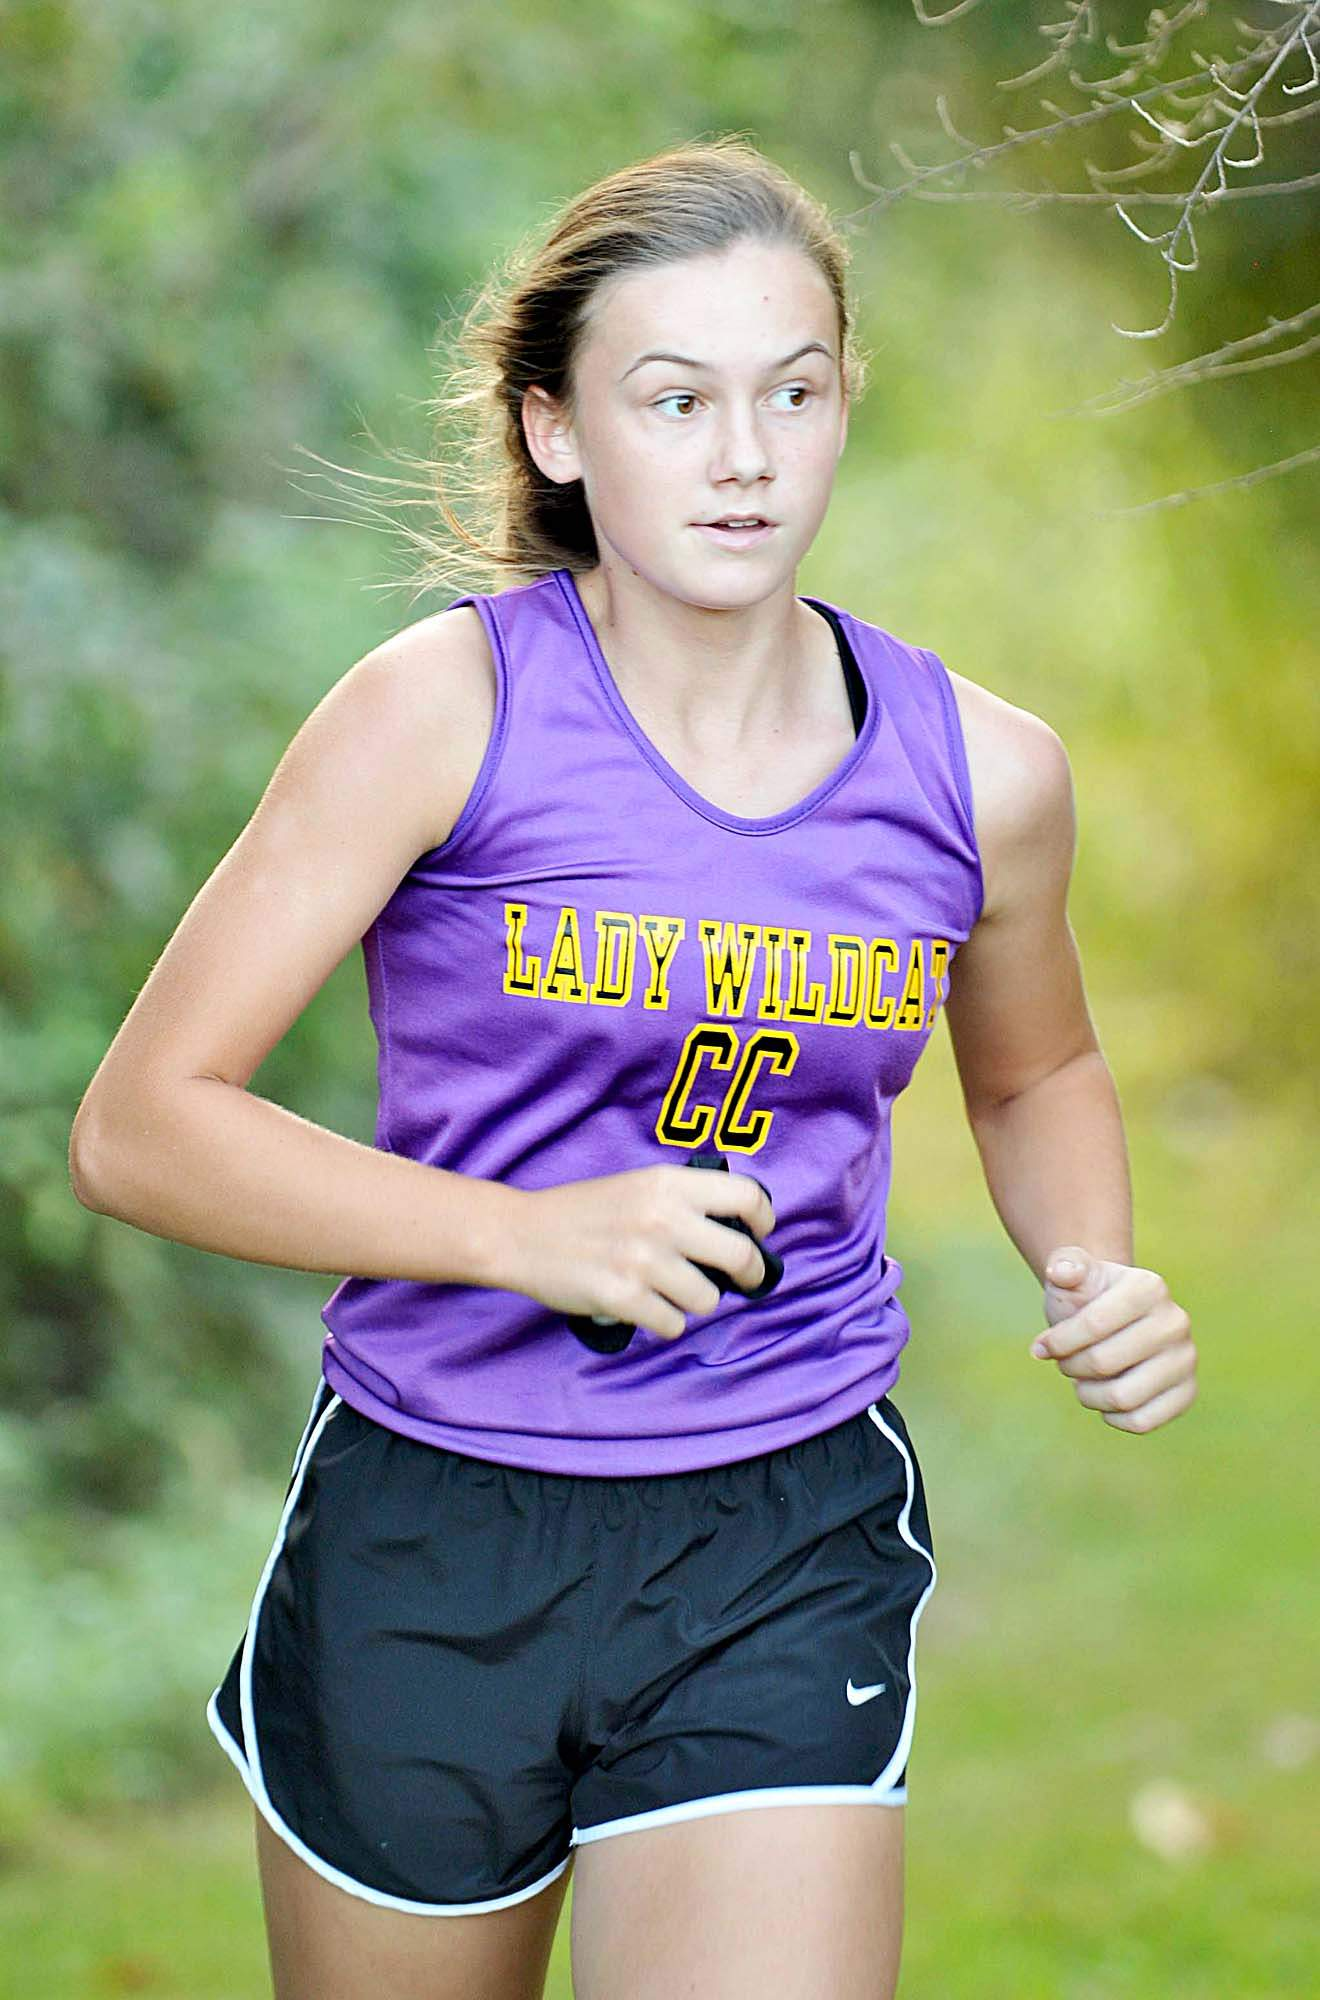 Abby Whiting was the top runner for the Carrier Mills-Stonefort Cross Country team Tuesday during the Harrisburg Invitational at SIC.